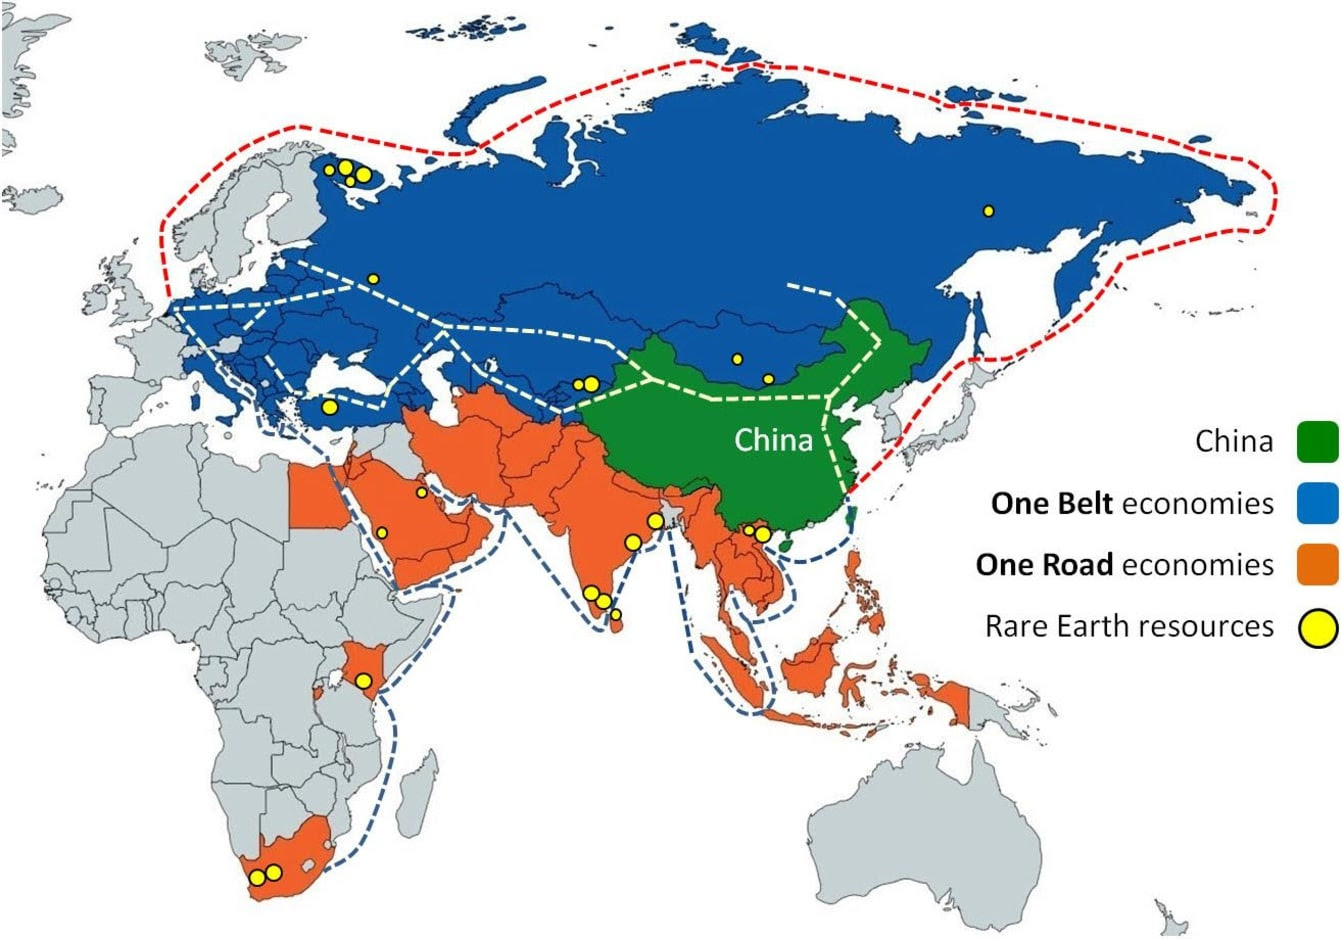 How China's One Belt, One Road initiative is ushering a new paradigm in Asian geopolitics